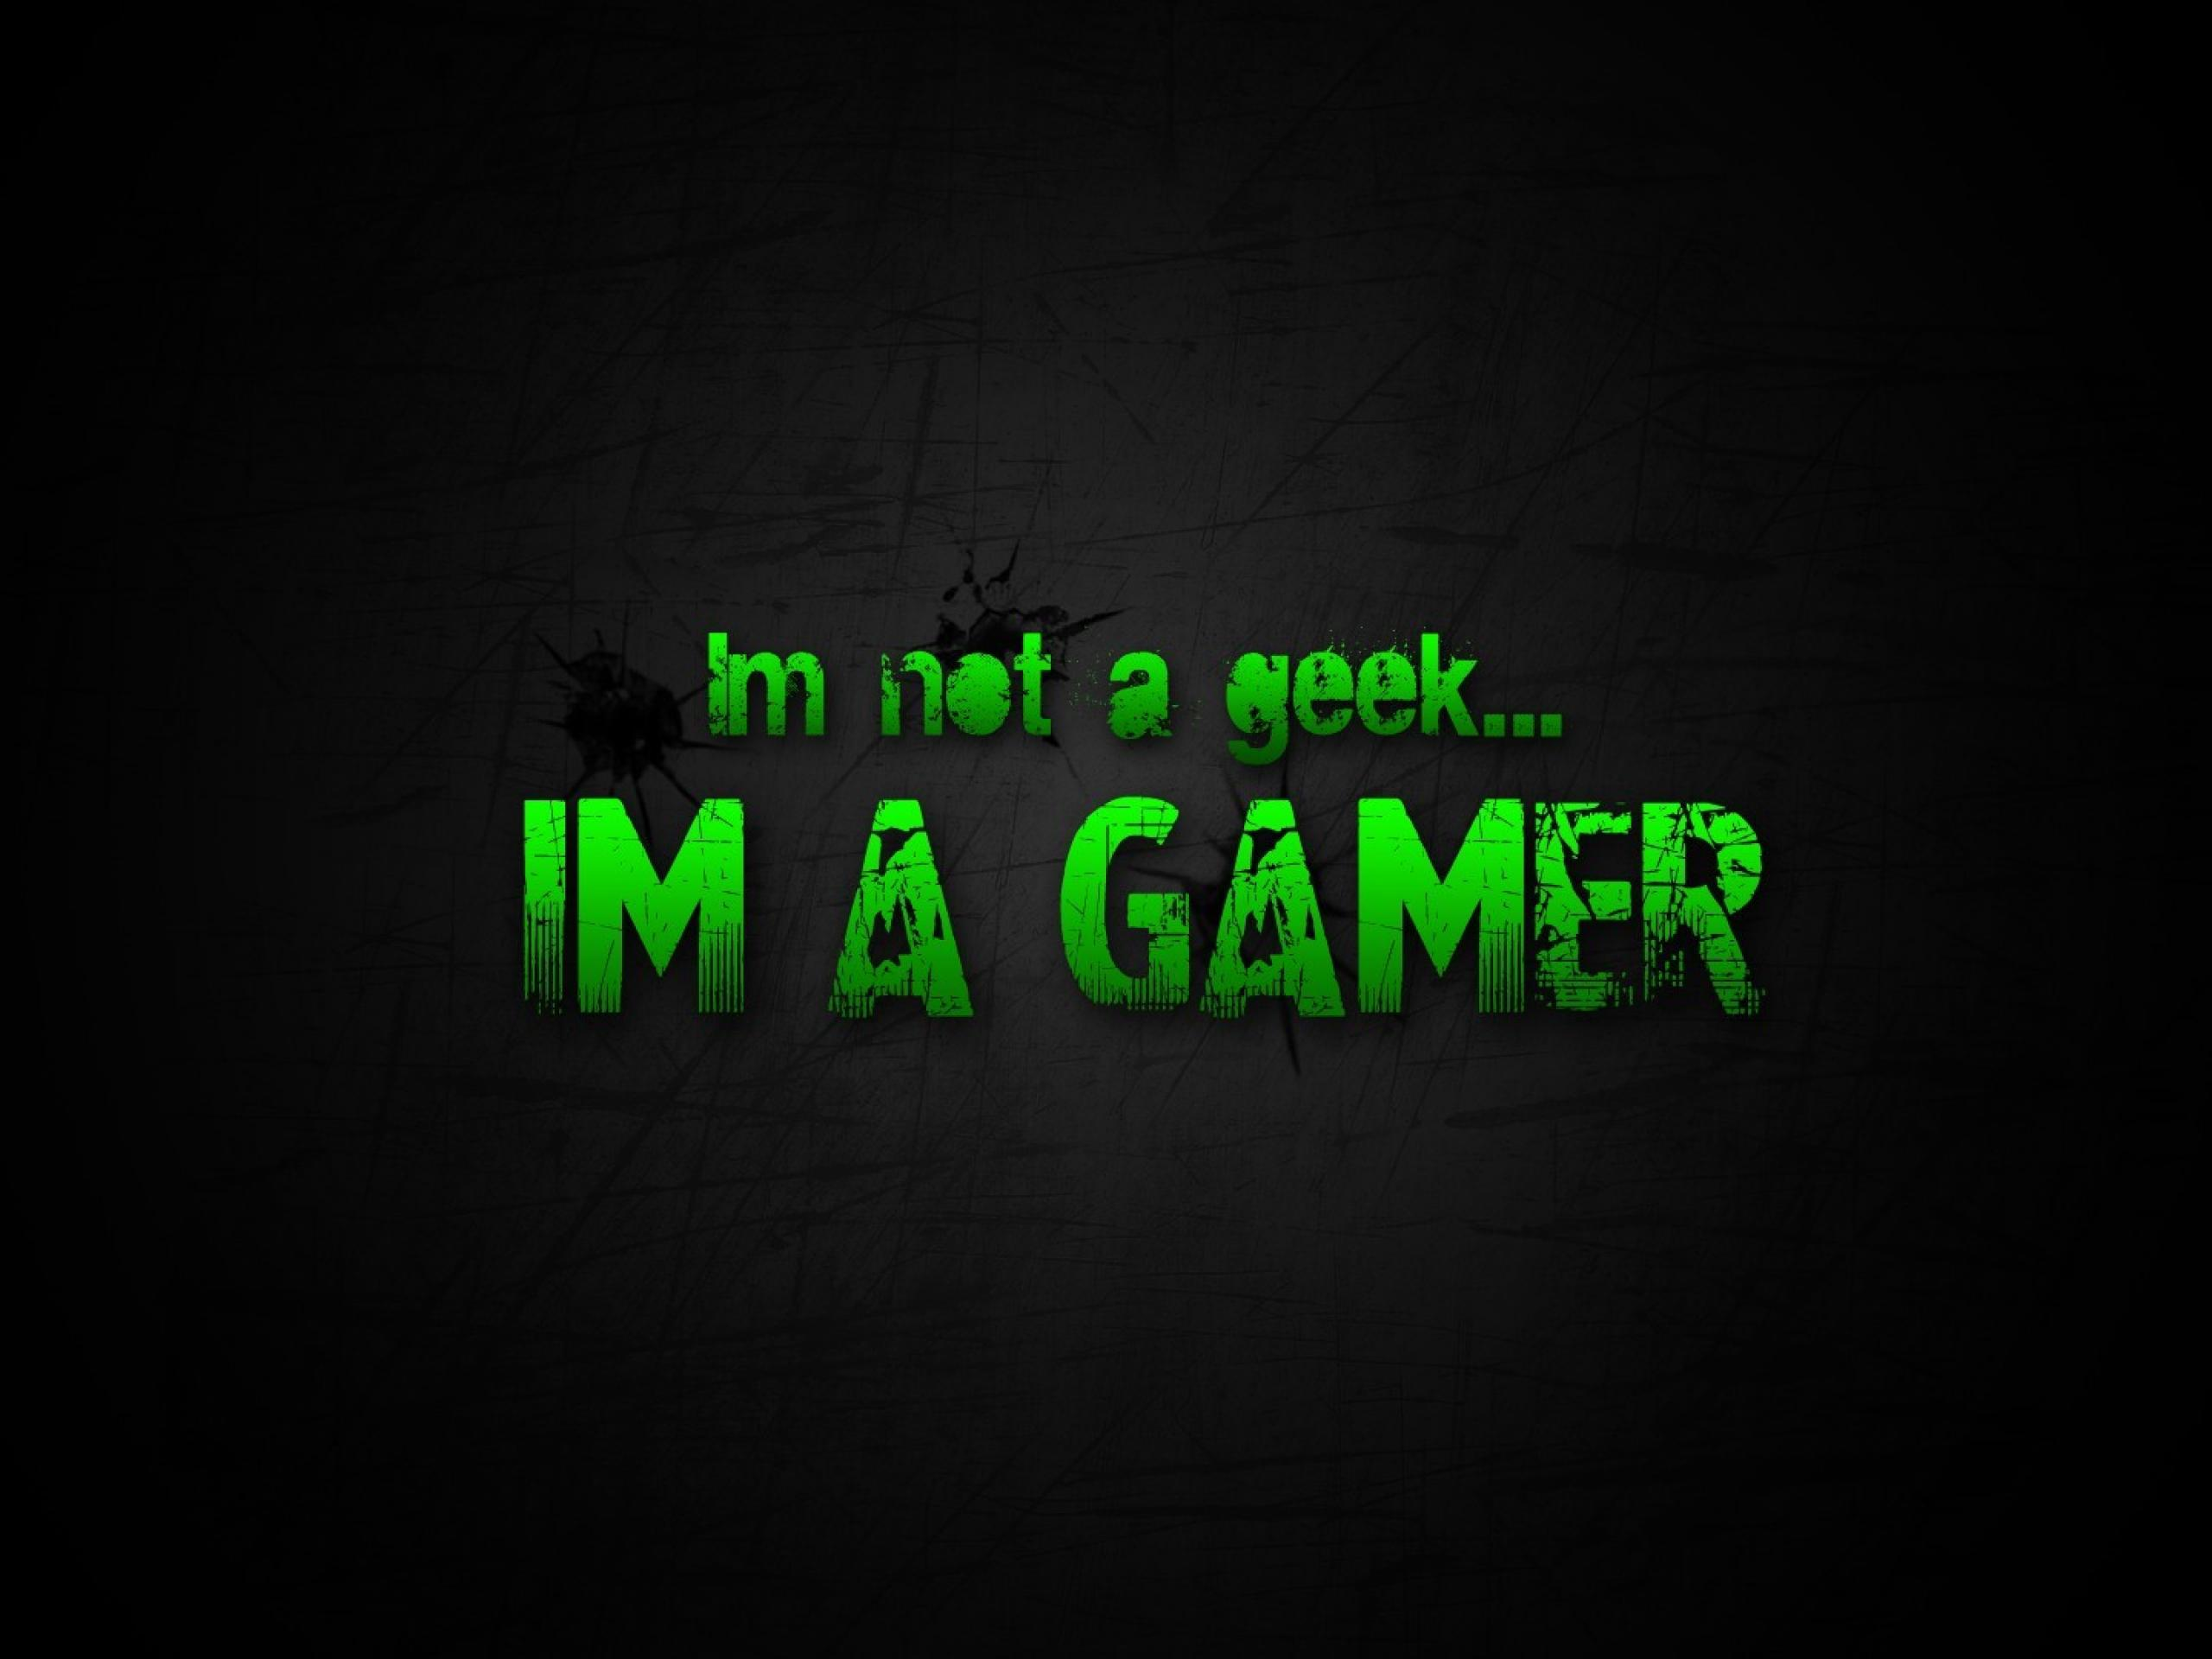 gamer wallpaperwallpapers geek green video games black nerd scratches 2560x1920